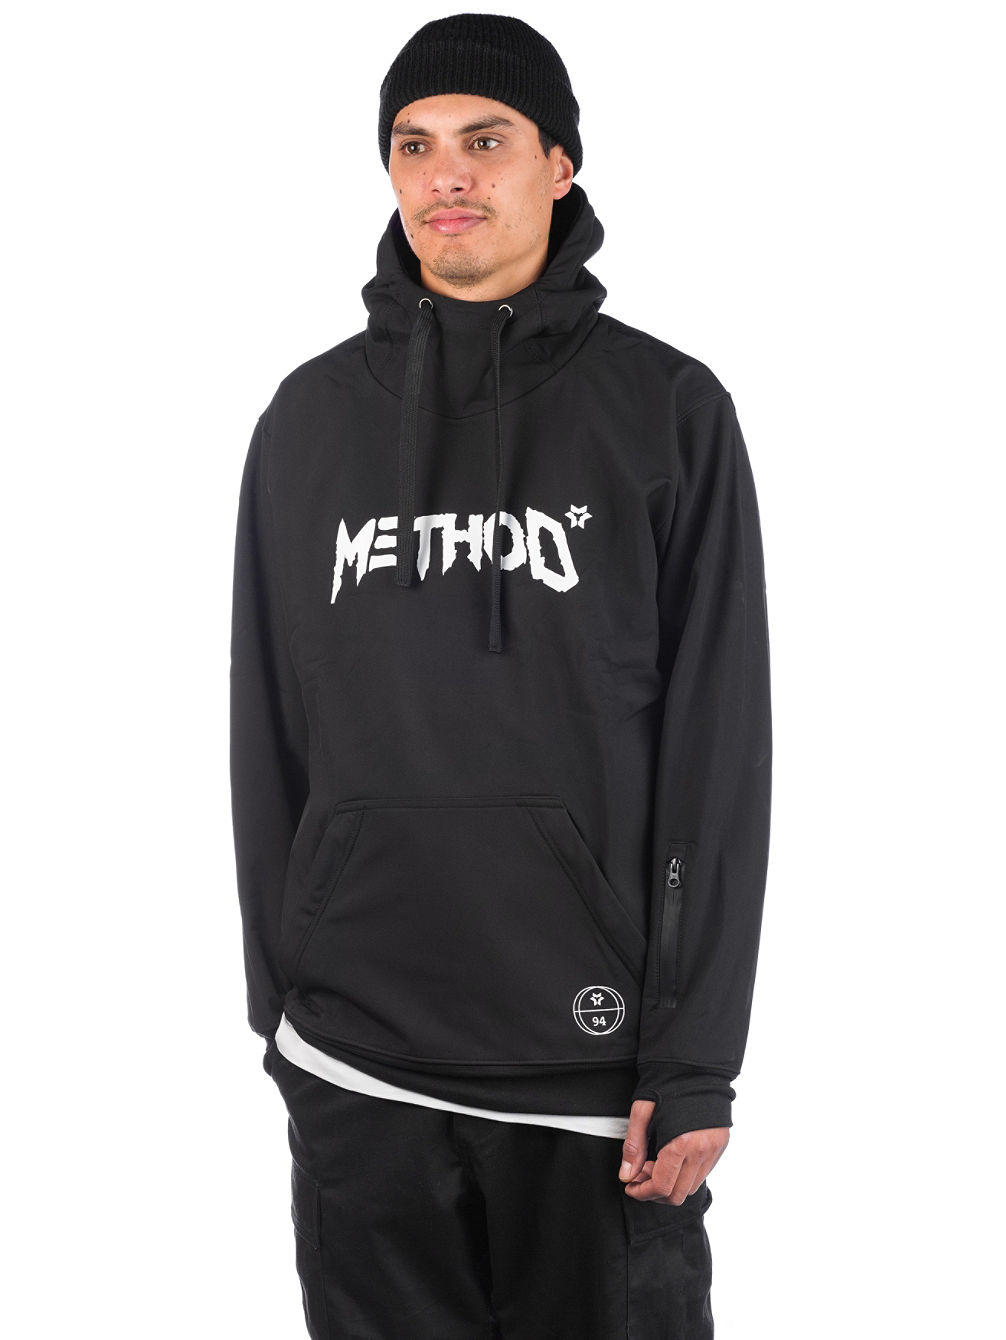 Technical Shred Hoodie